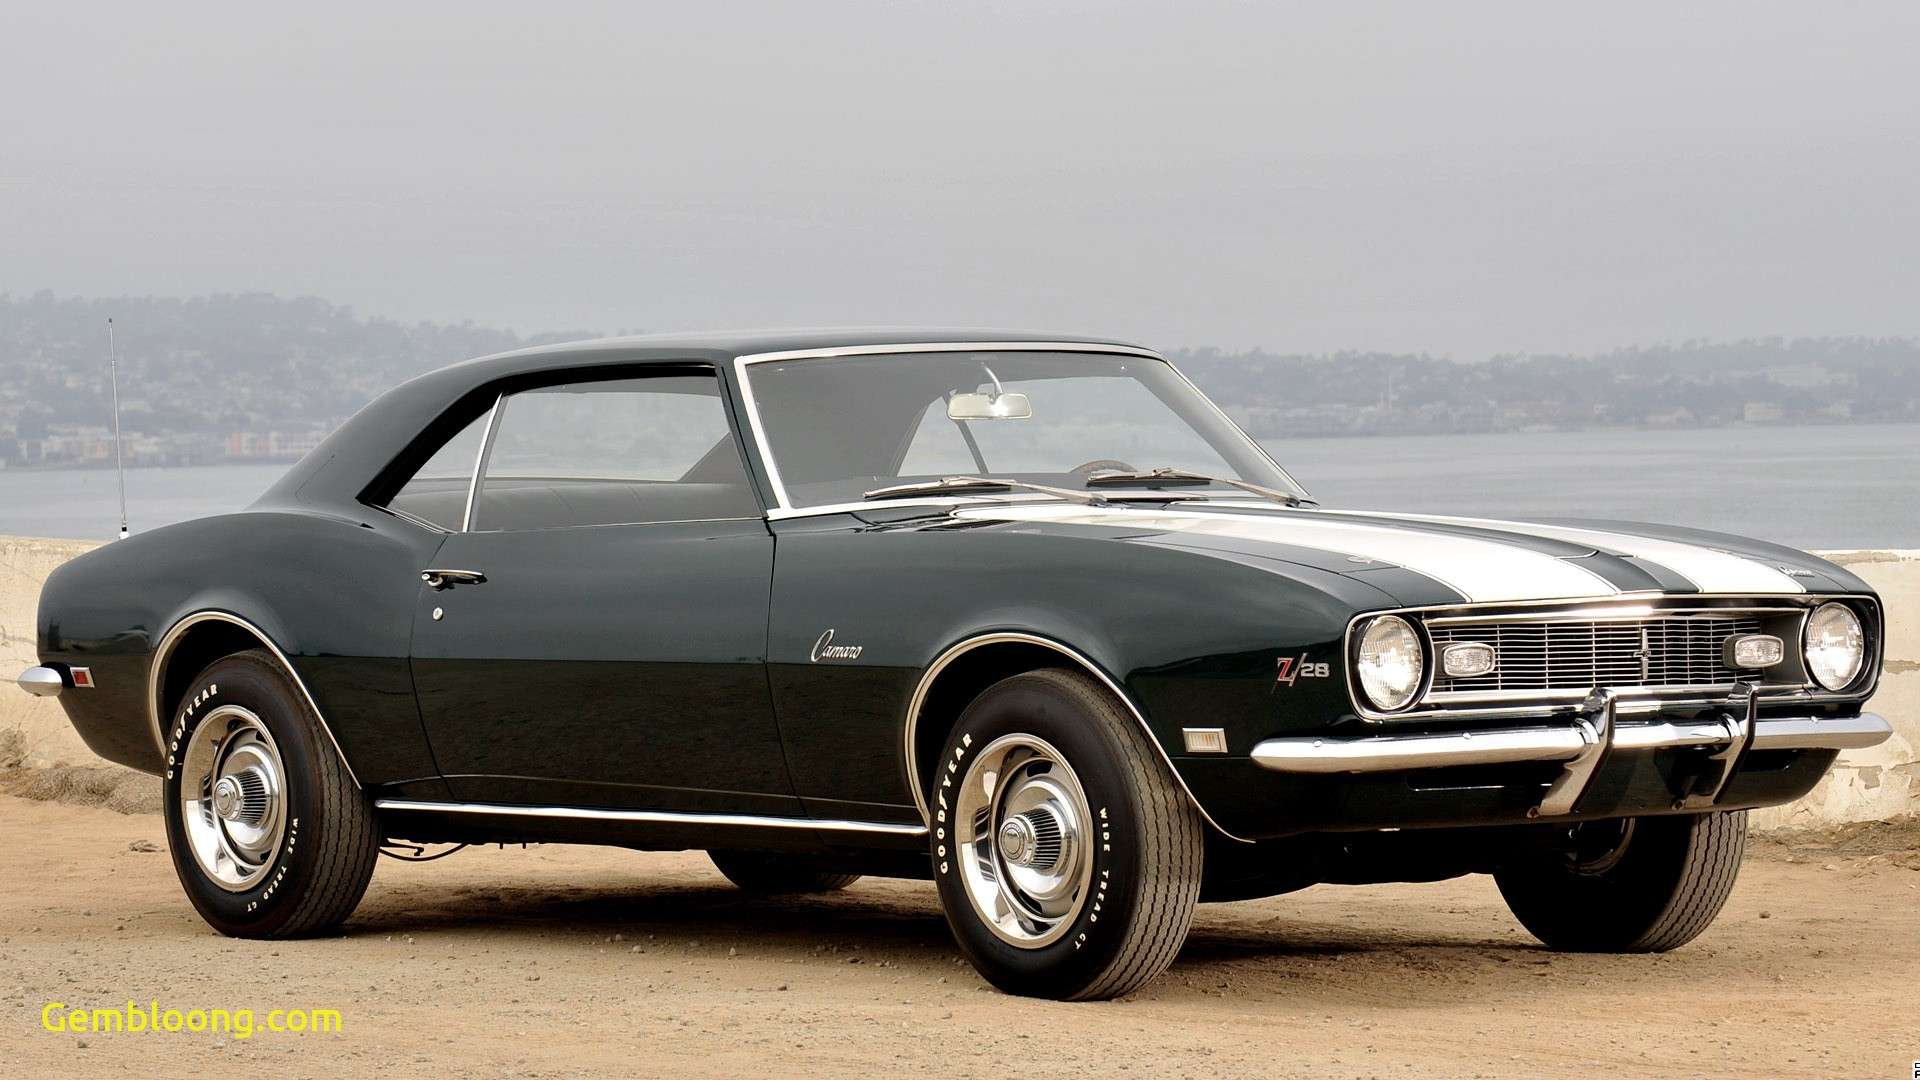 Muscle Cars for Sale Fresh Free Muscle Cars for Sale Cheap Hd Wallpaper